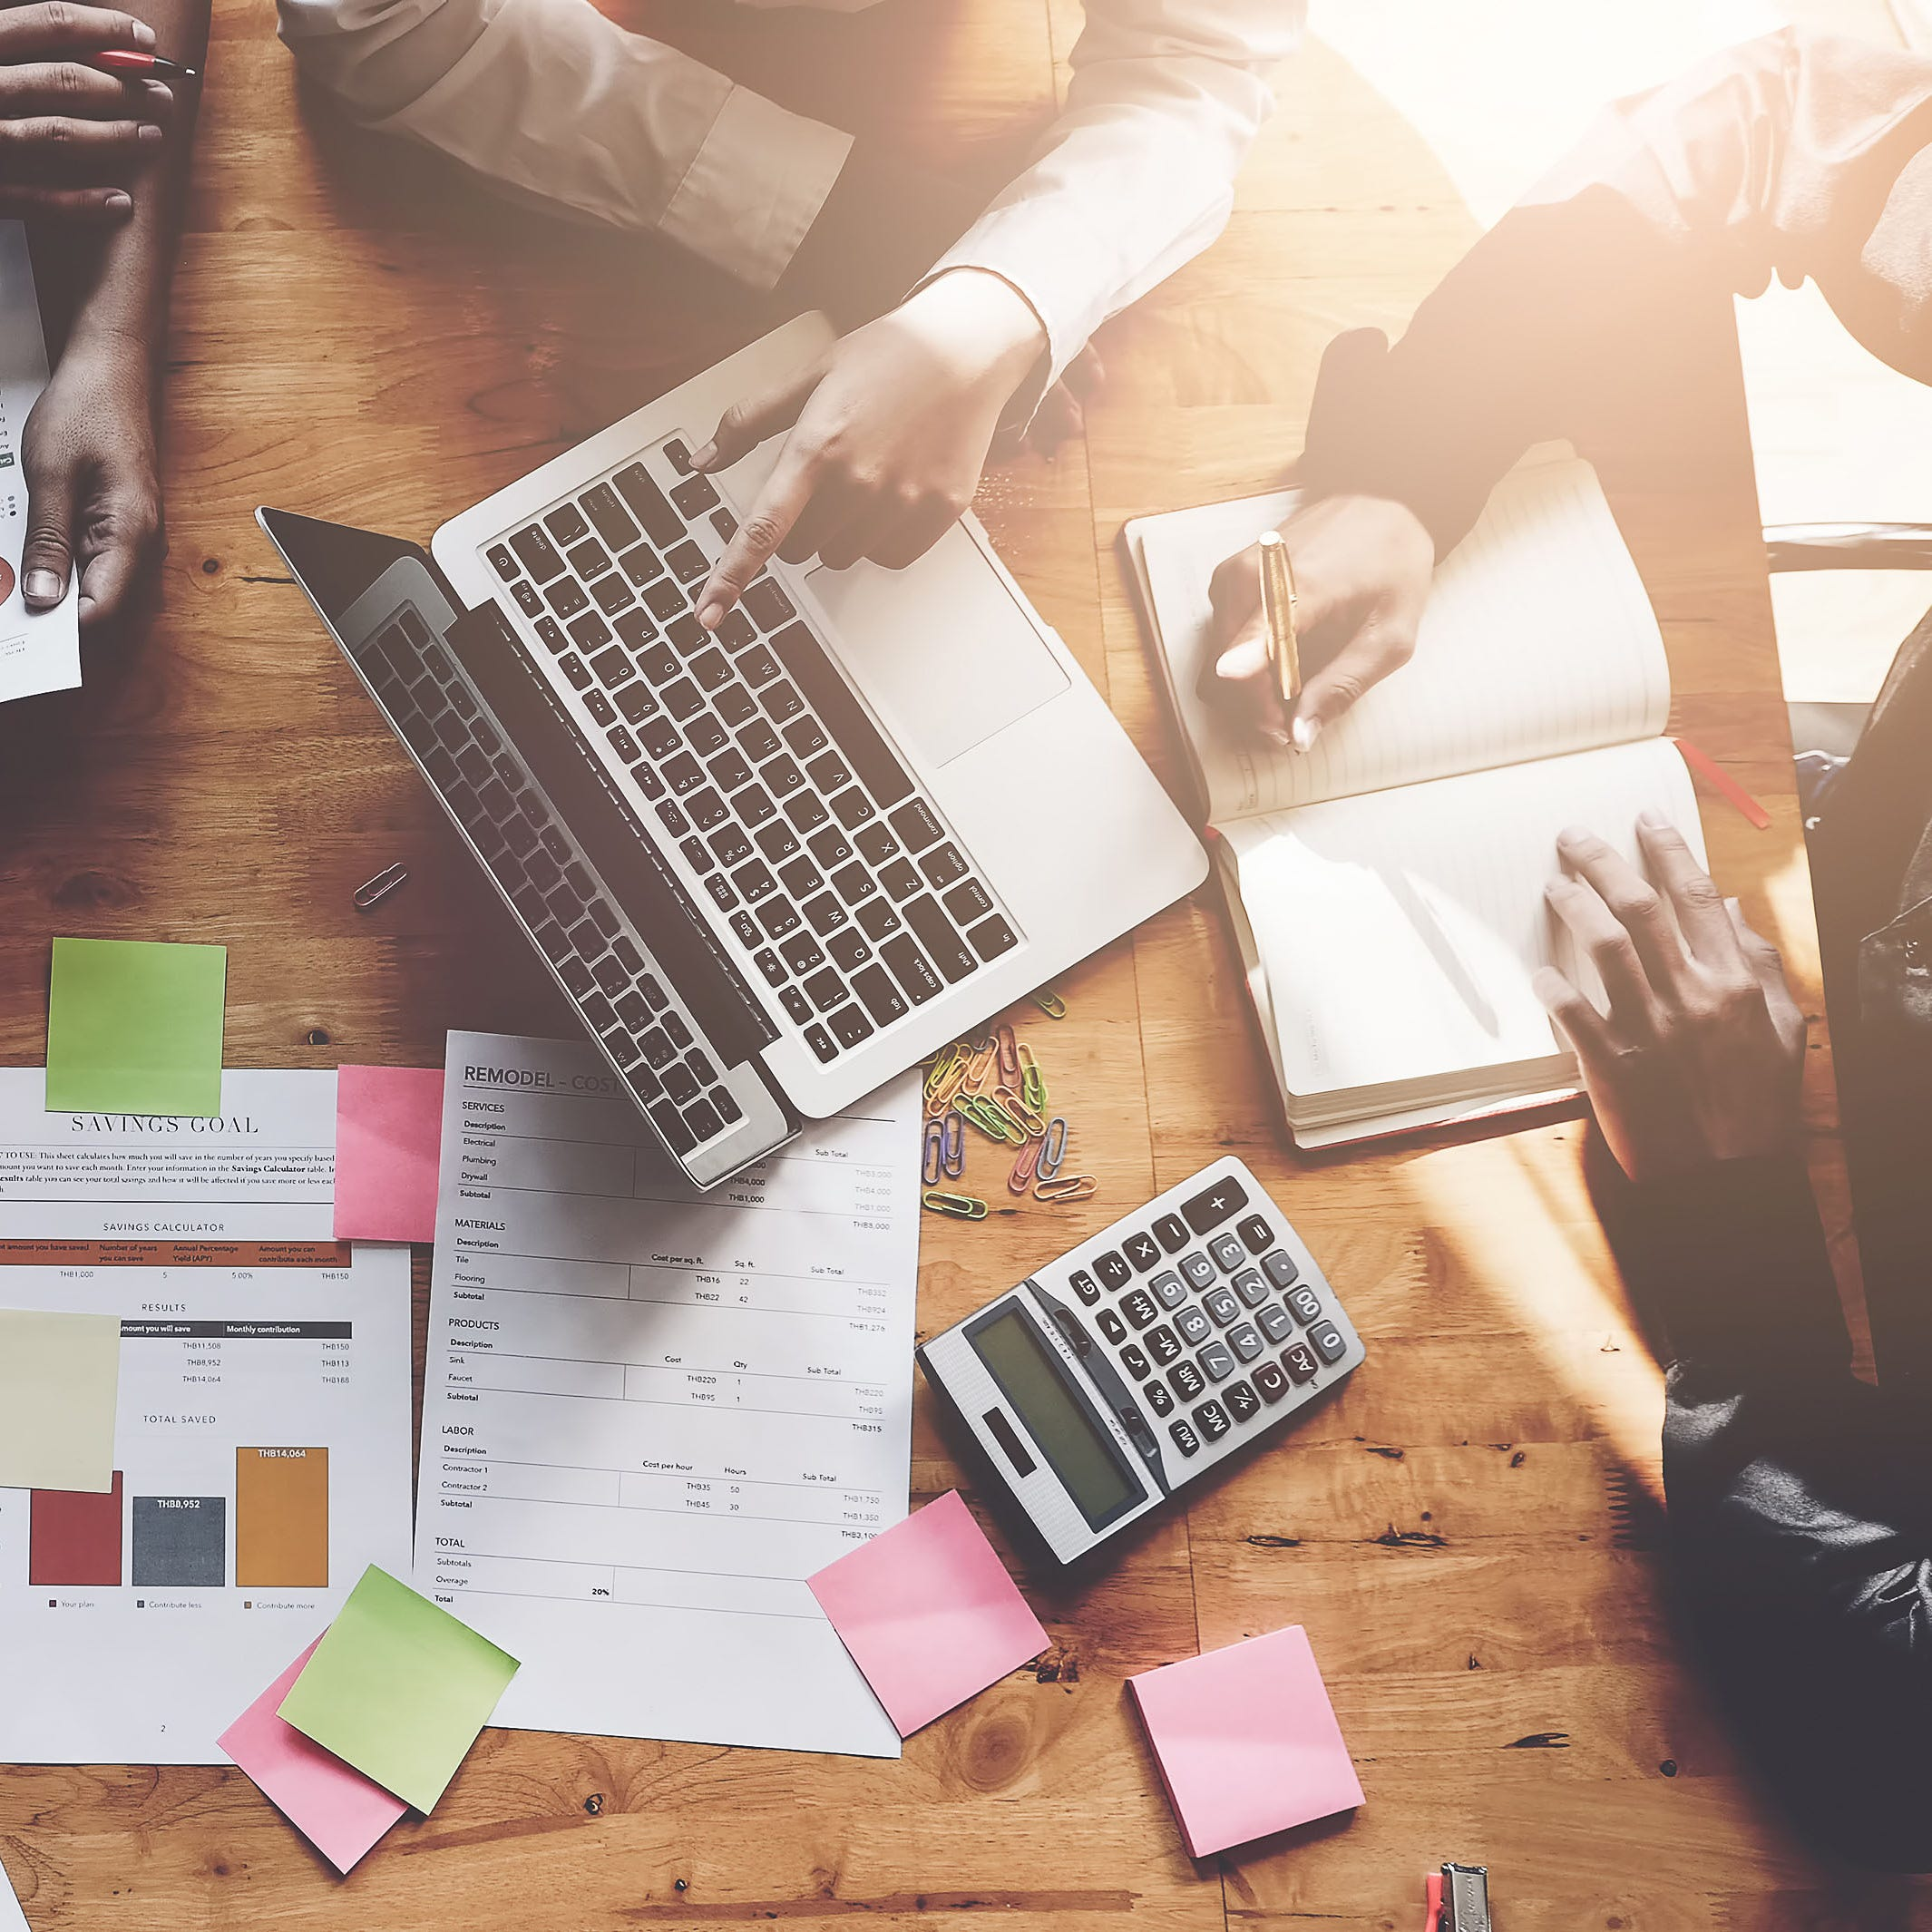 Starting a company? Whether it's a small business or a venture-backed startup, these credit cards can help your enterprise's bottom line.